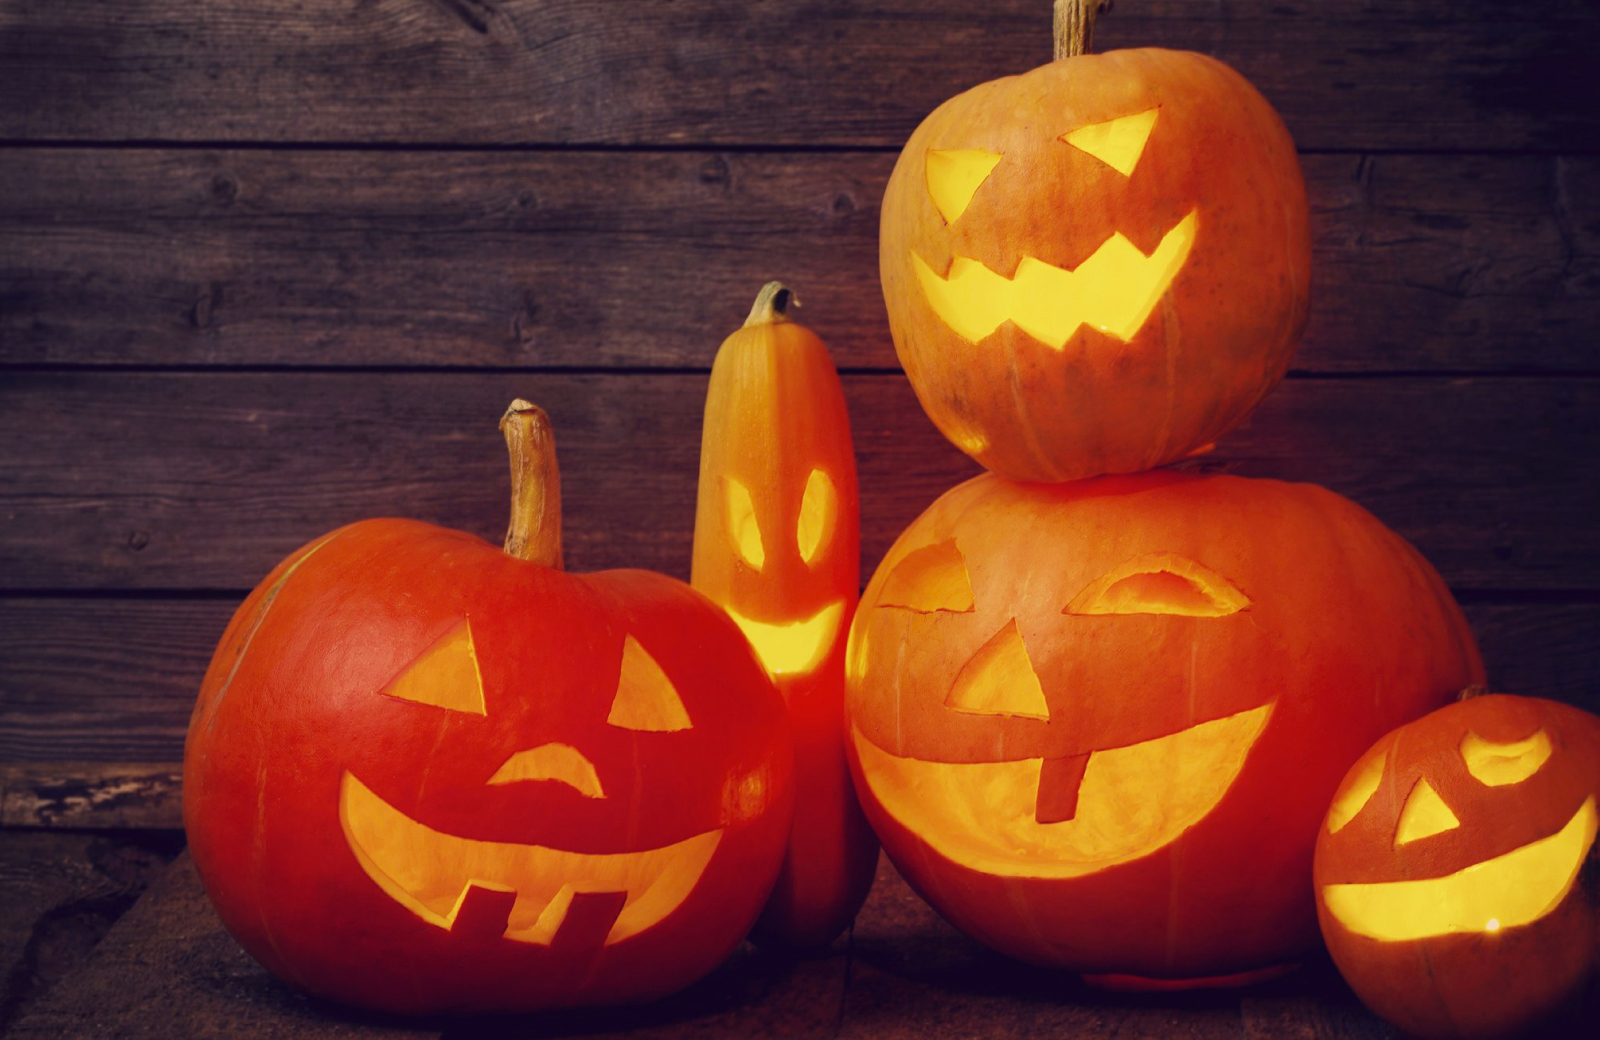 Celebrate Halloween in Norwalk - The Waypointe Apts